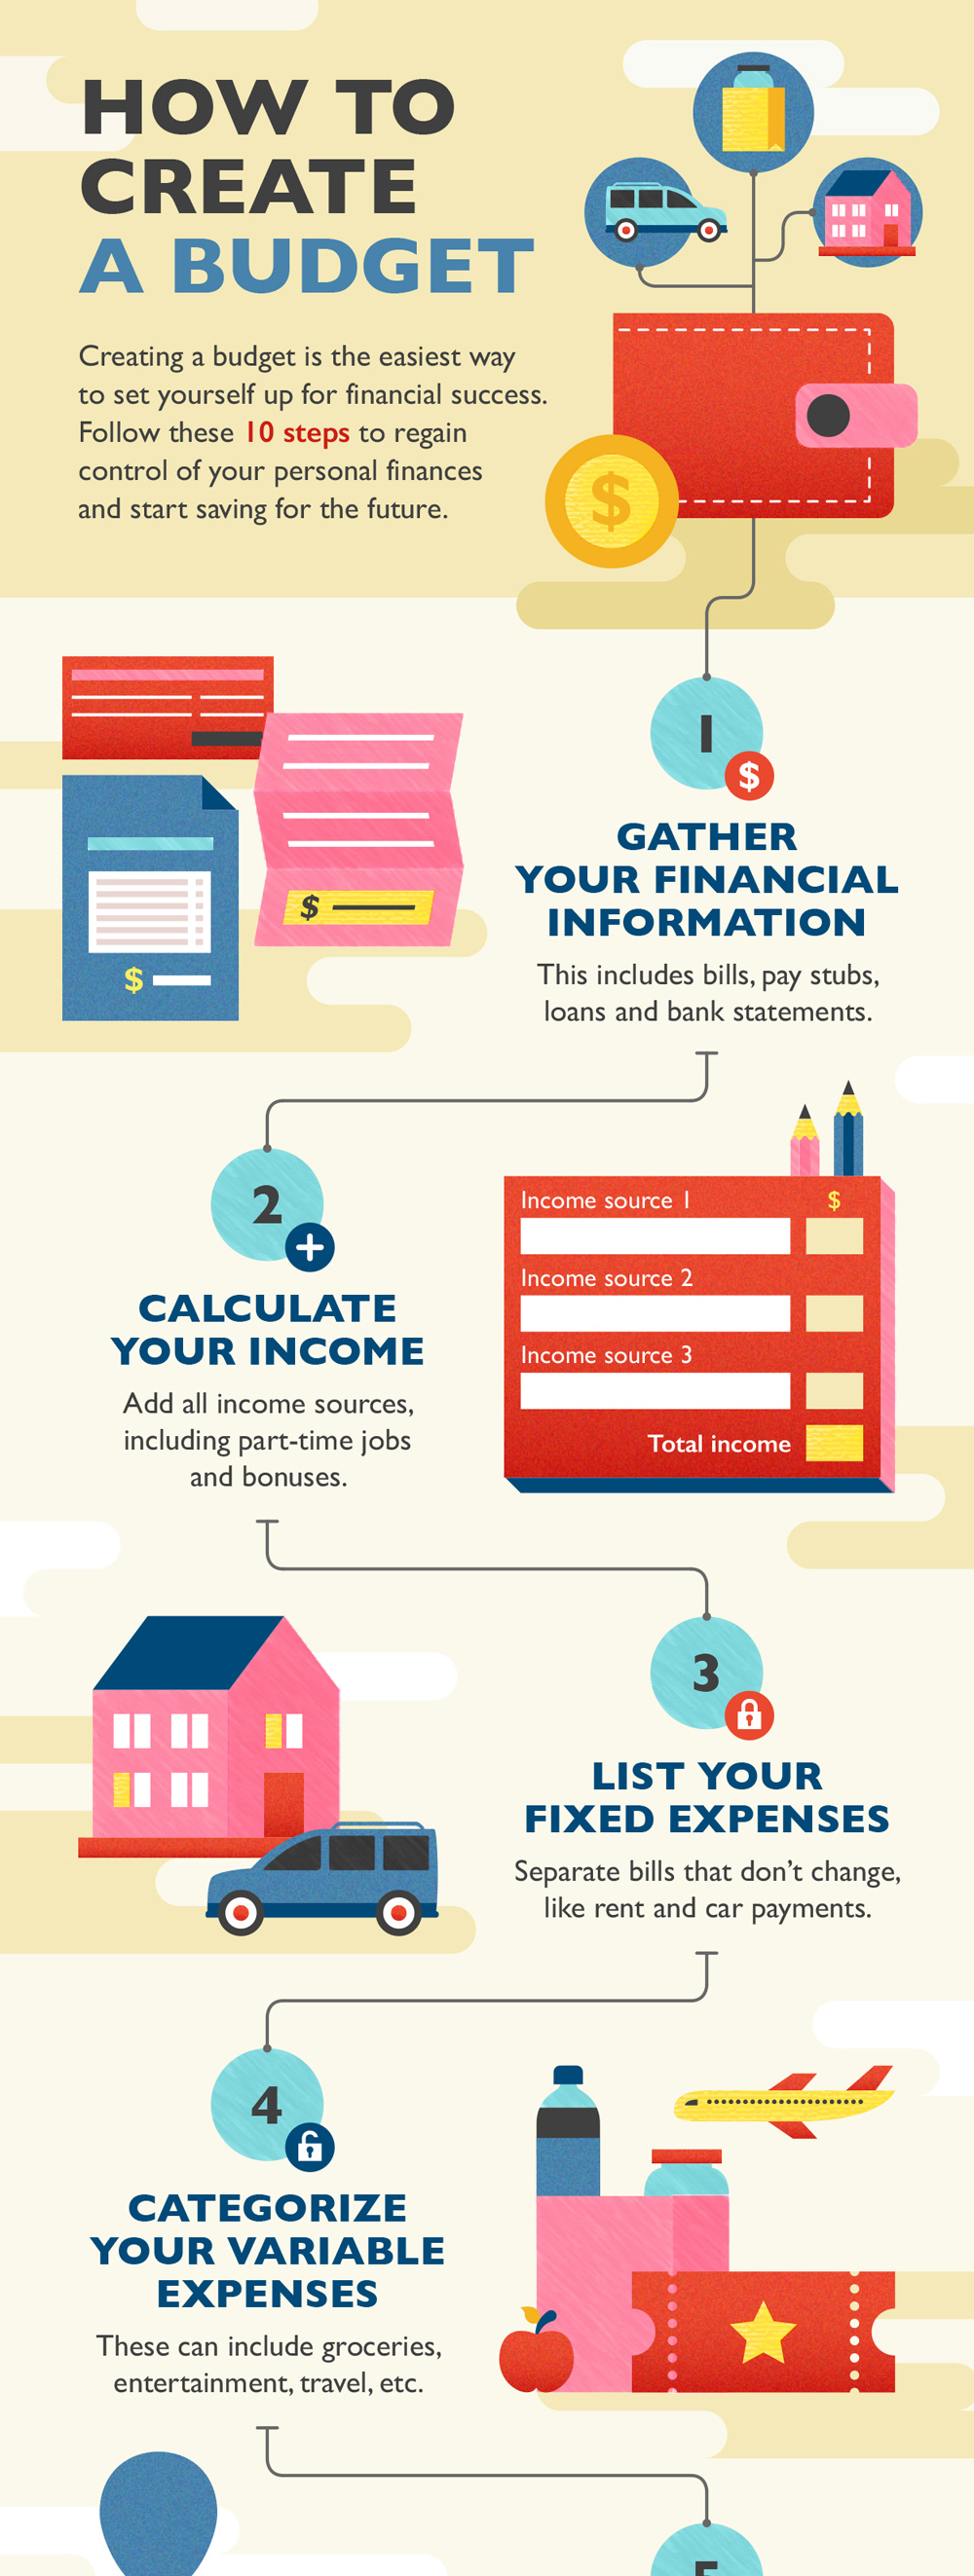 Quicken: Create a Budget infographic